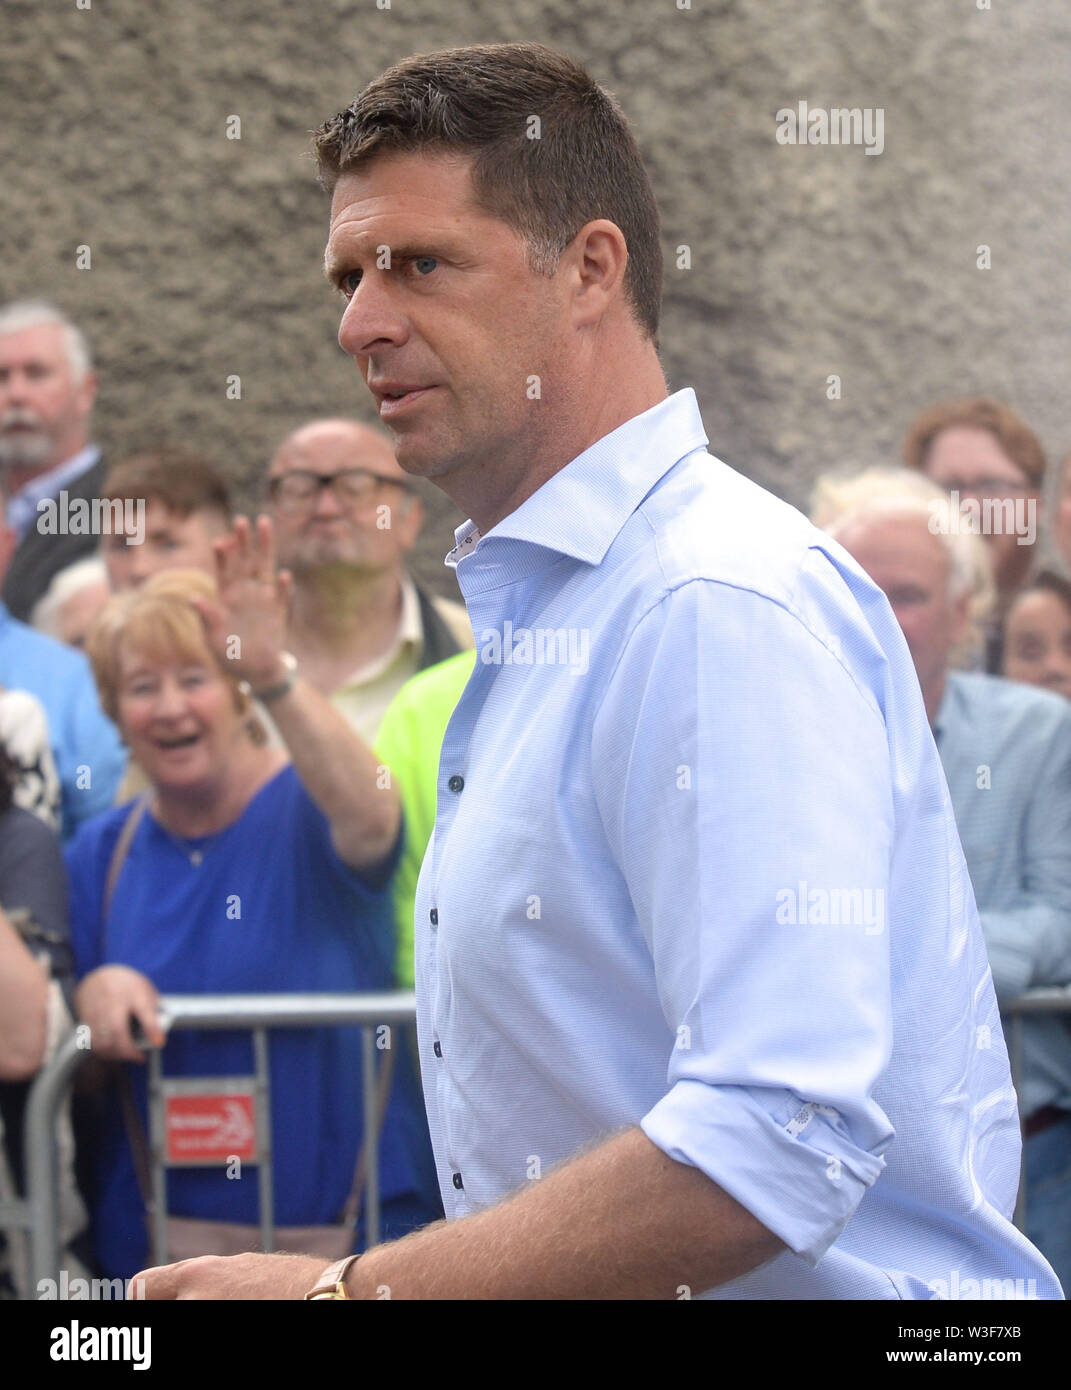 Former footballer and businessman Niall Quinn arrives for the funeral of Father Ted star Brendan Grace at the Church of St. Nicholas of Myra, Dublin. - Stock Image